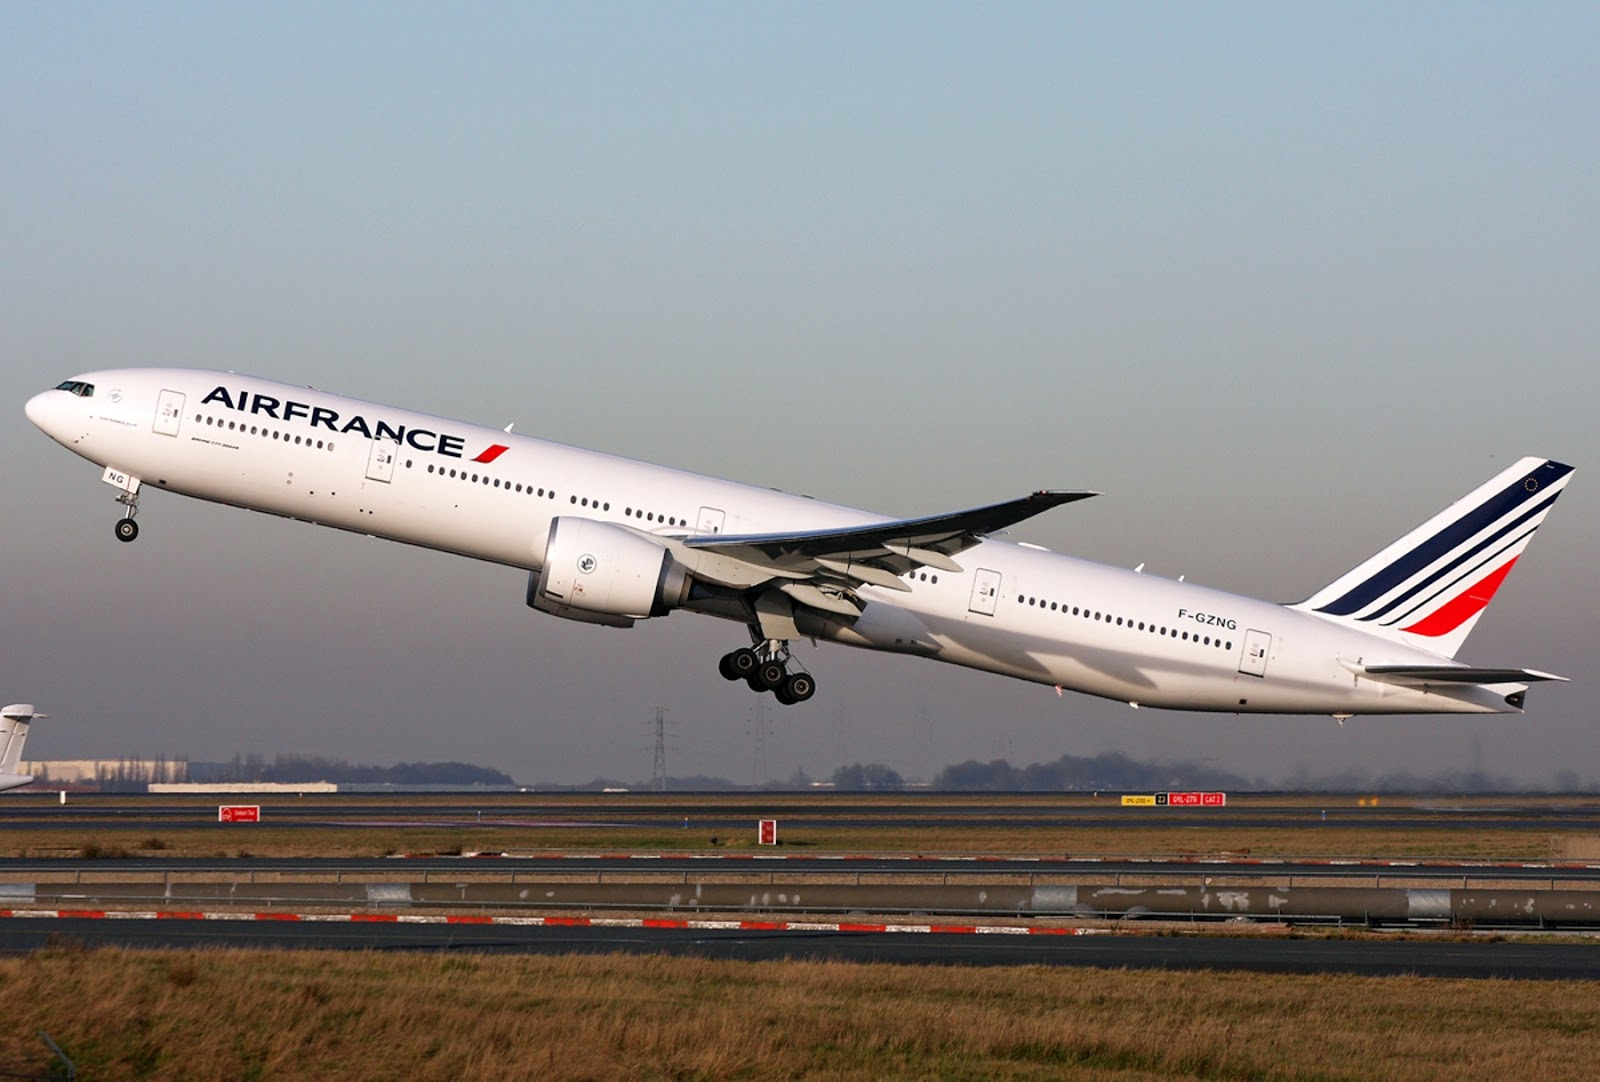 Great Boeing 777 300ER Of Air France Takeoff Aircraft Wallpaper 3326